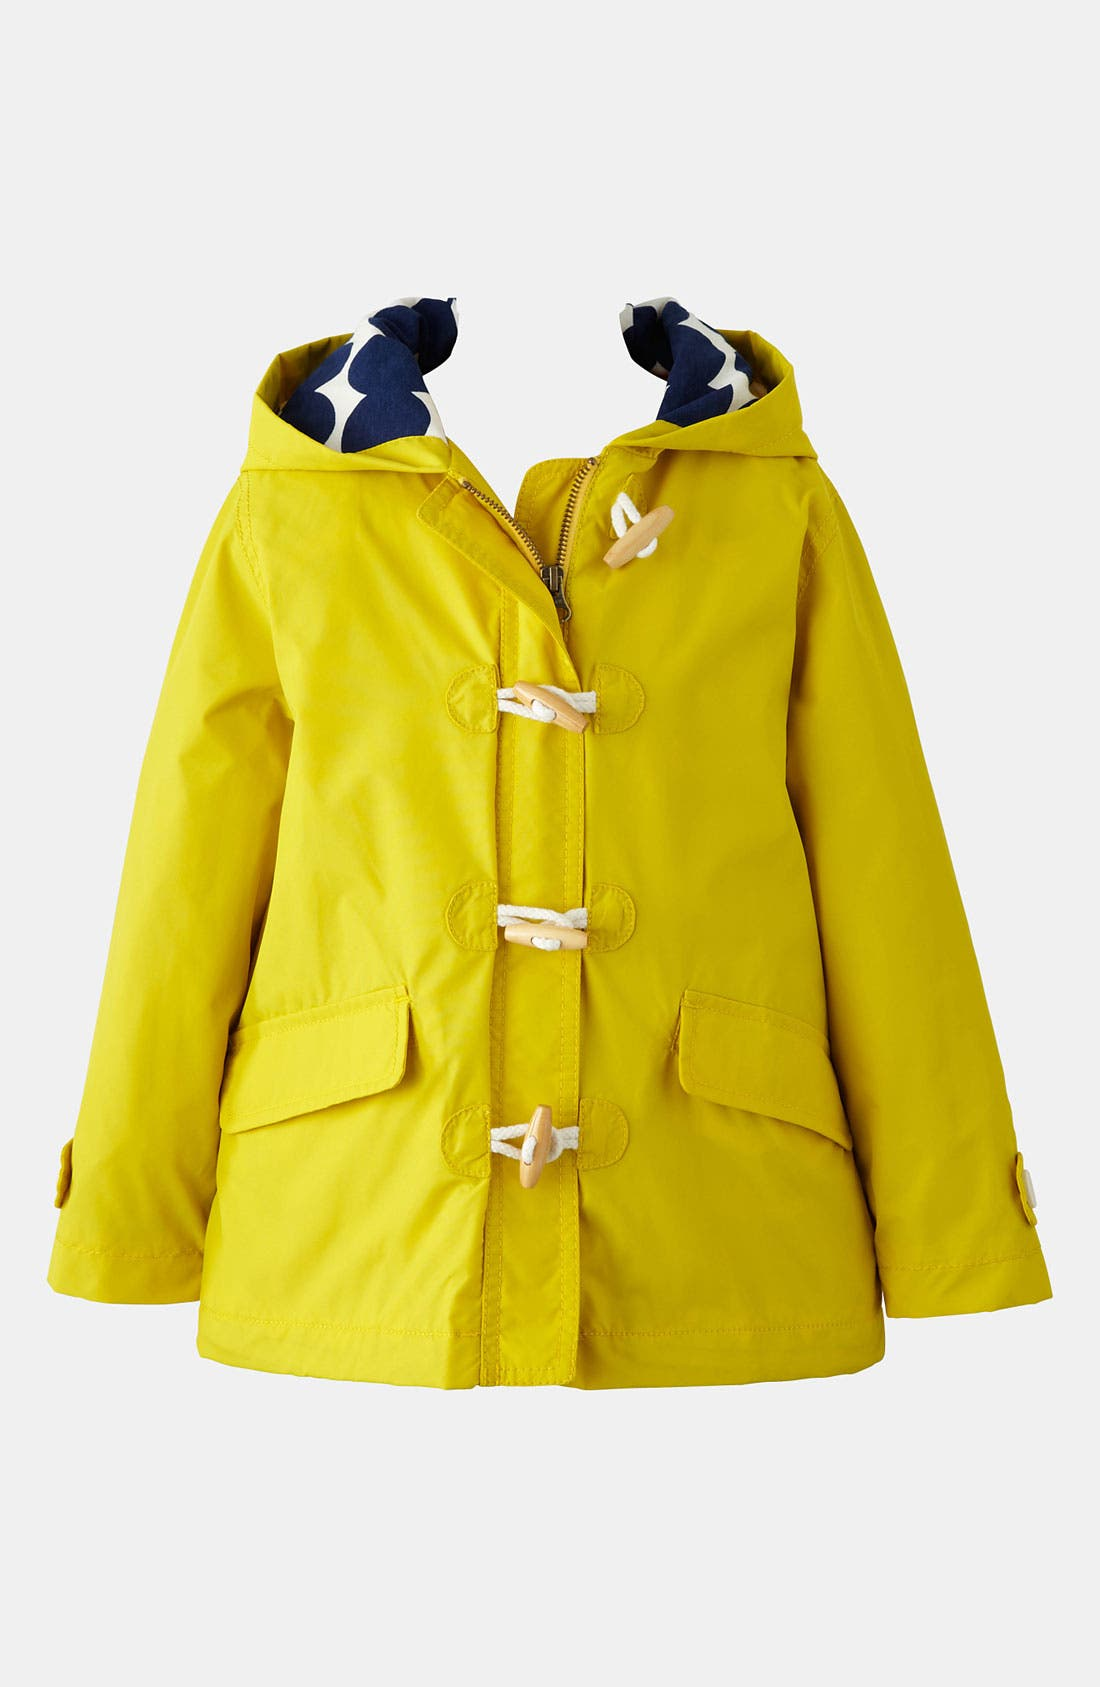 Alternate Image 1 Selected - Mini Boden 'Fisherman' Rain Jacket (Little Girls & Big Girls)